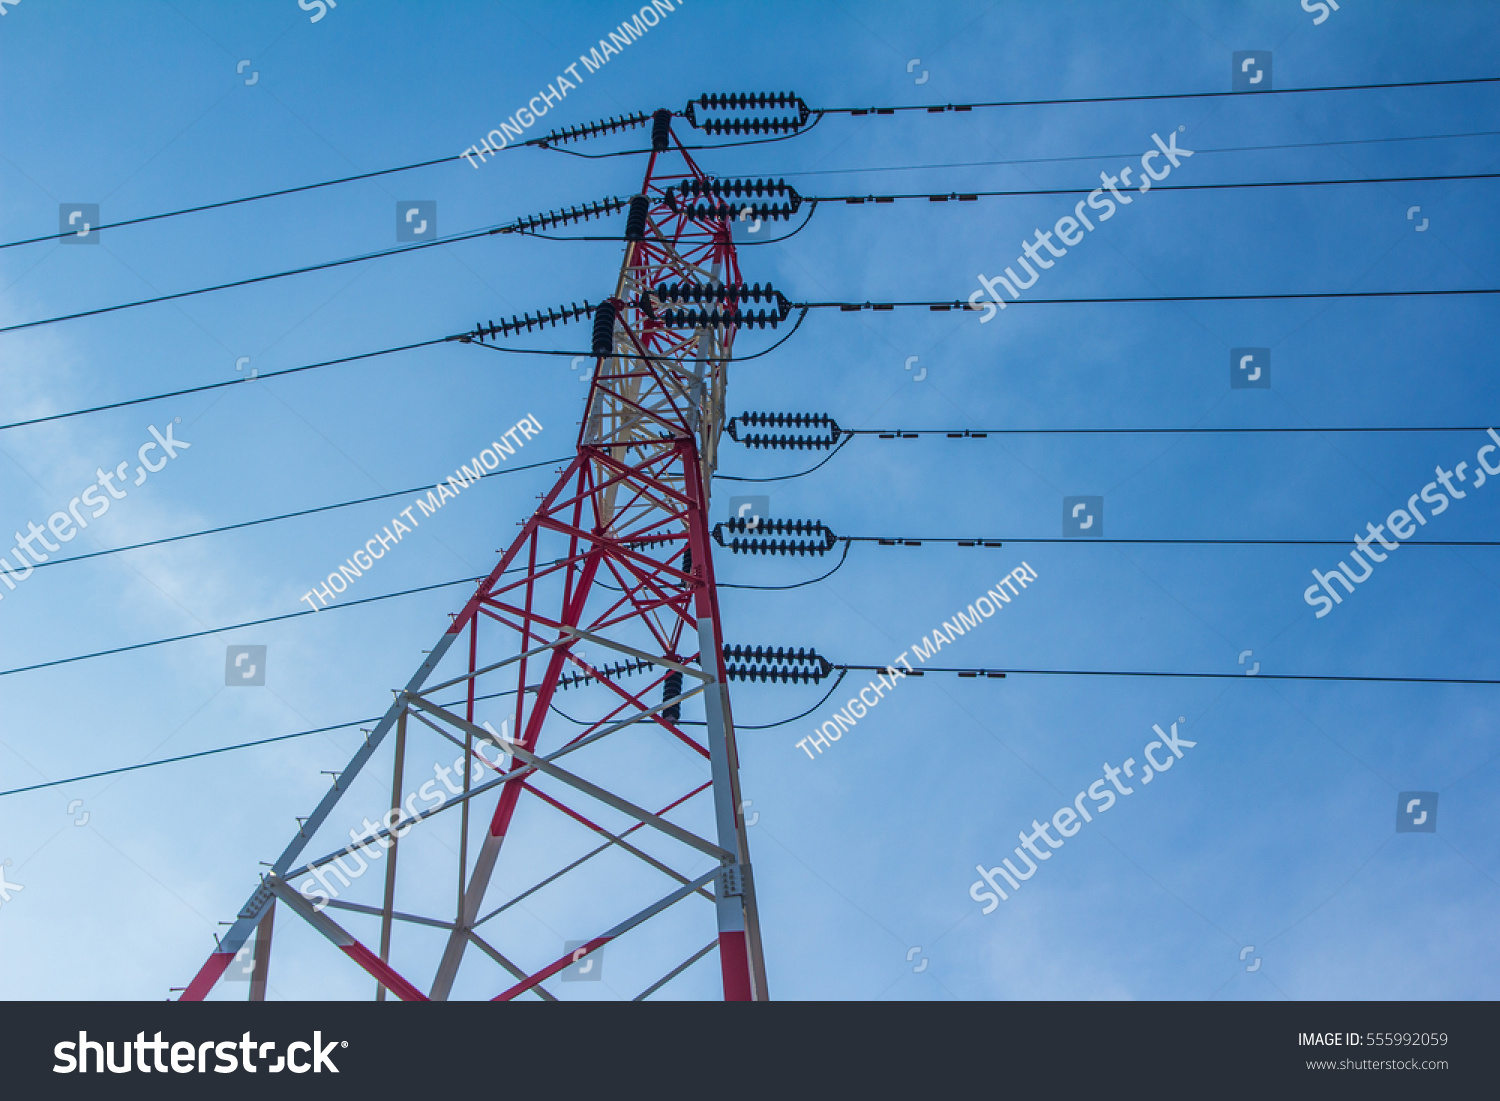 high voltage electric pole with red and white color | EZ Canvas